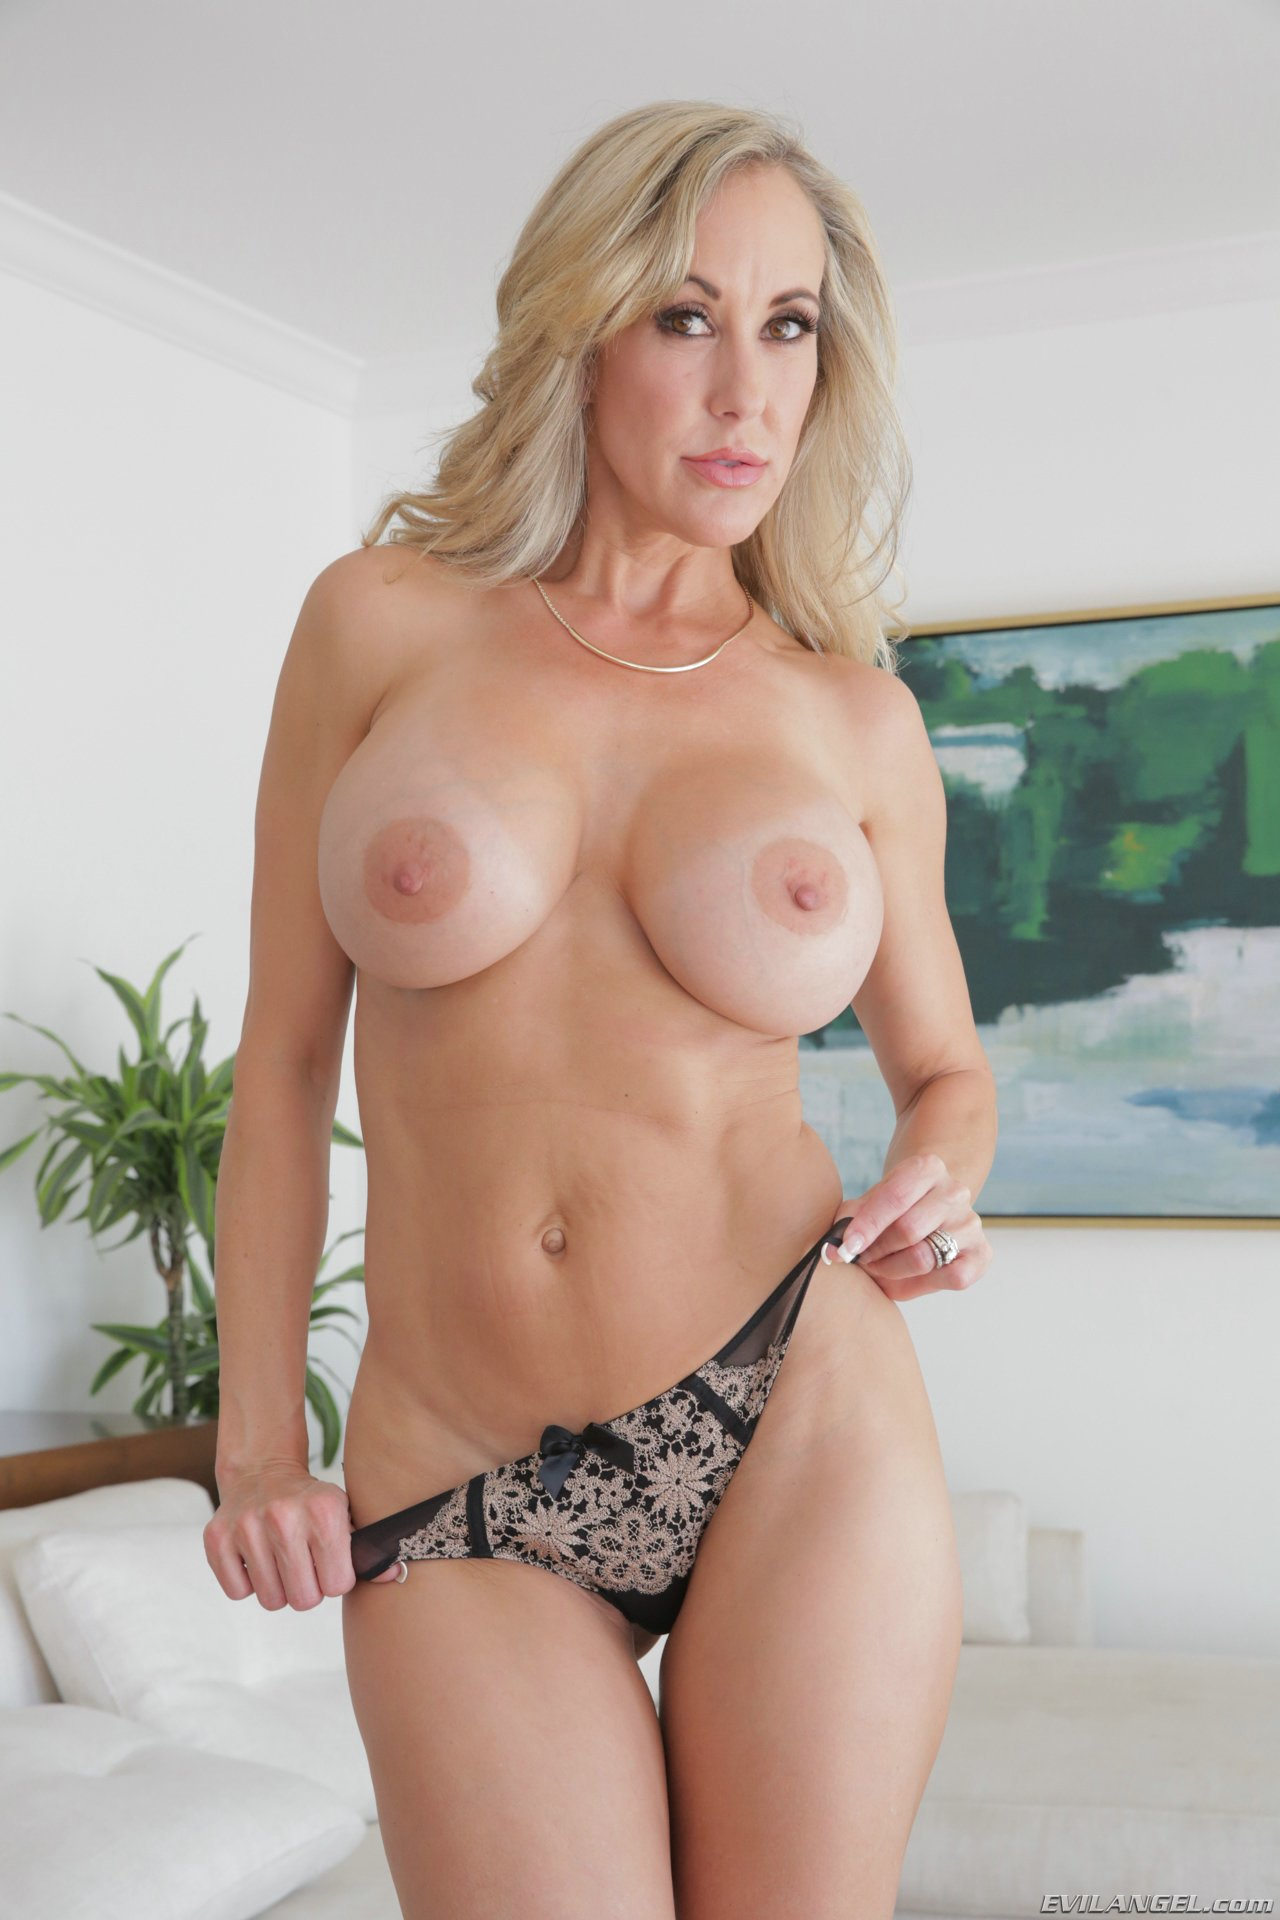 Brandi naked lose strip recommend you